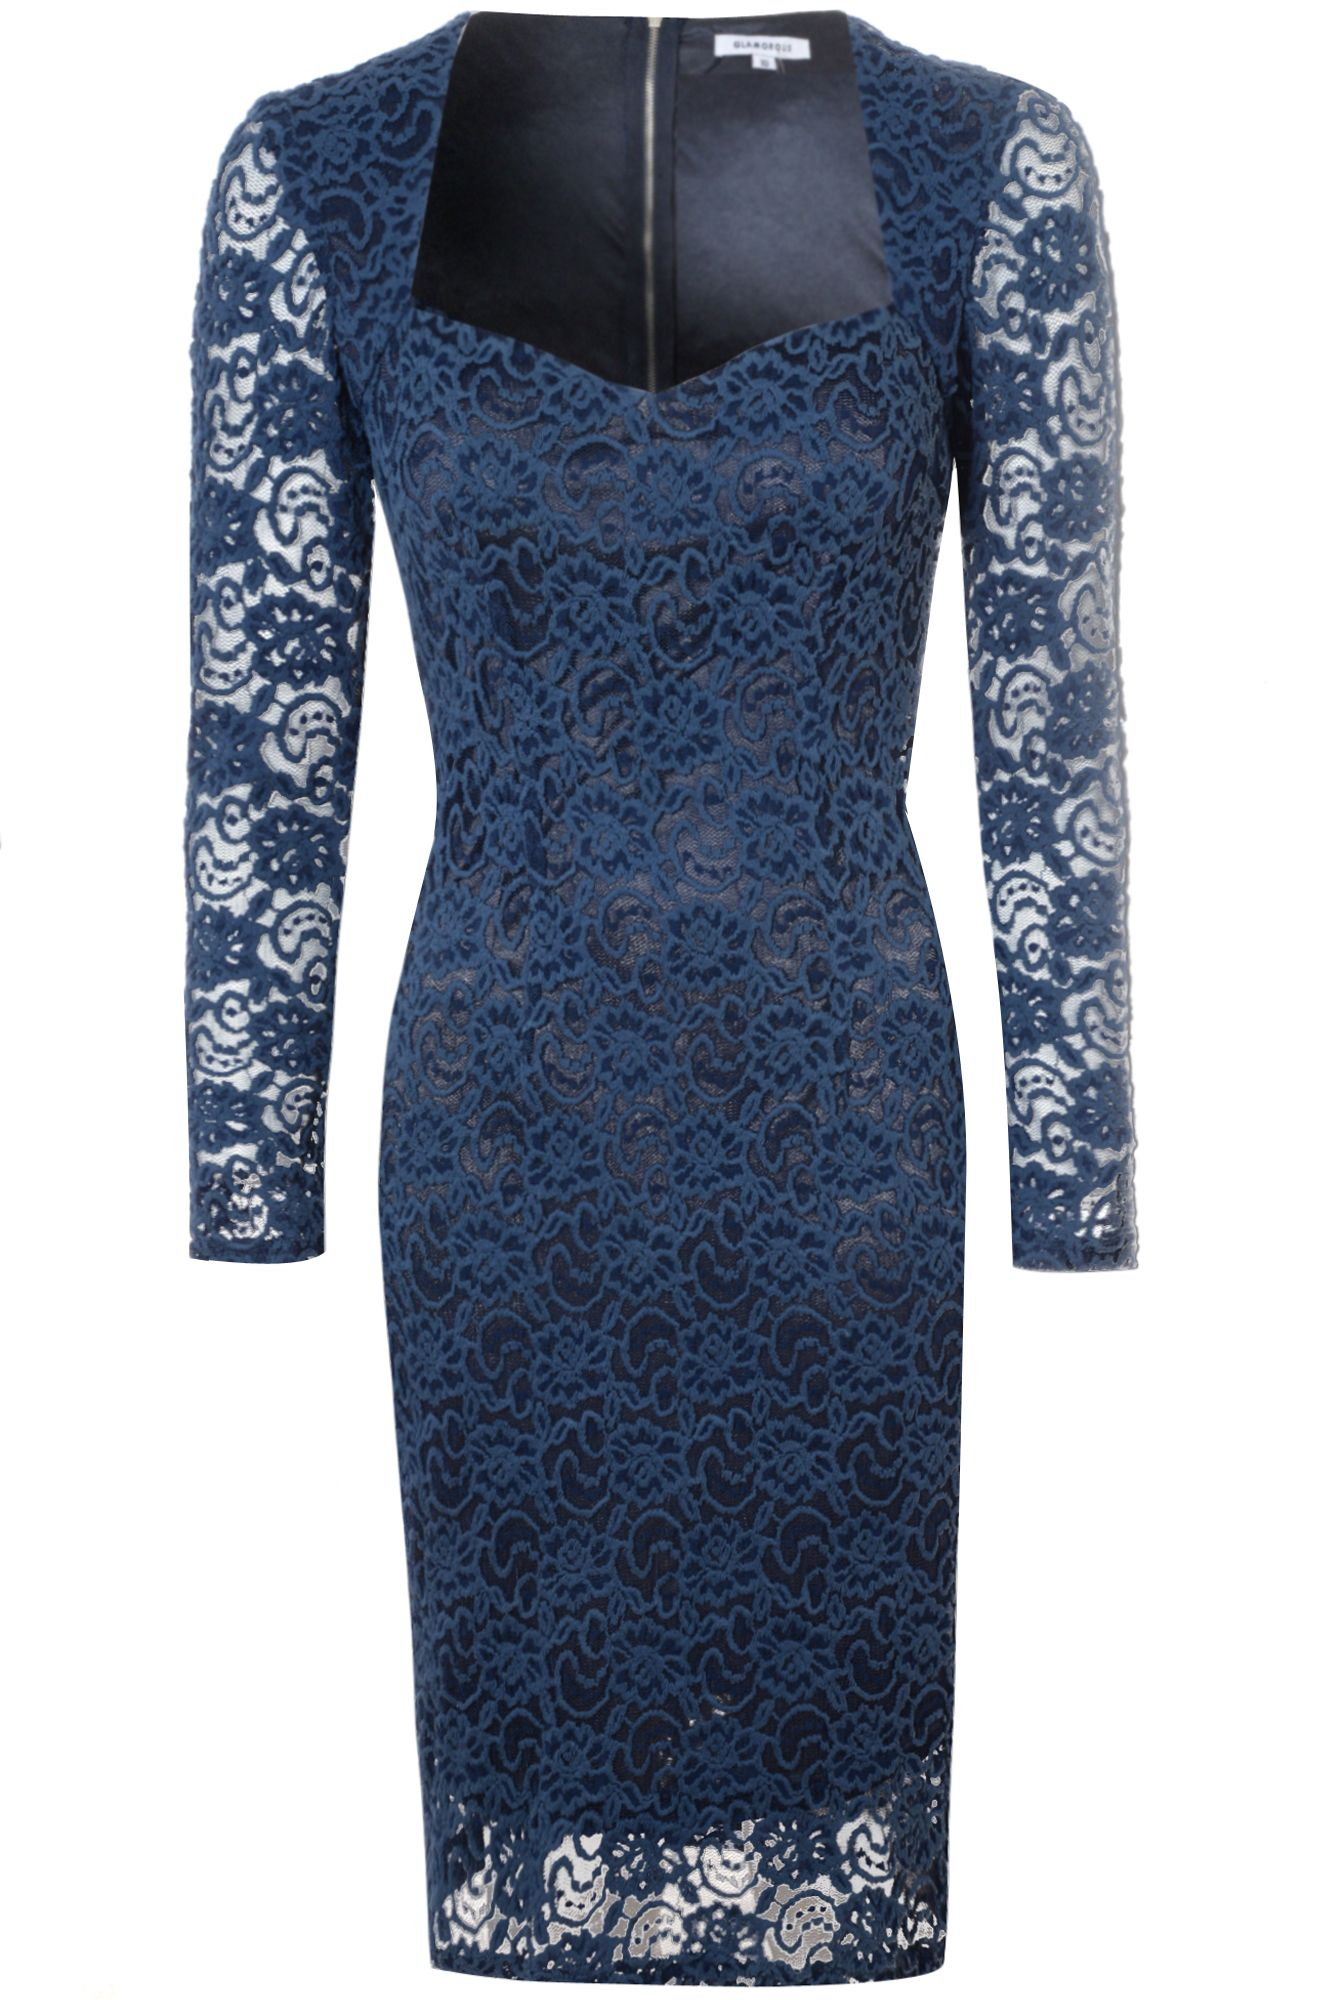 Alice & You Sweetheart Lace Dress, Navy